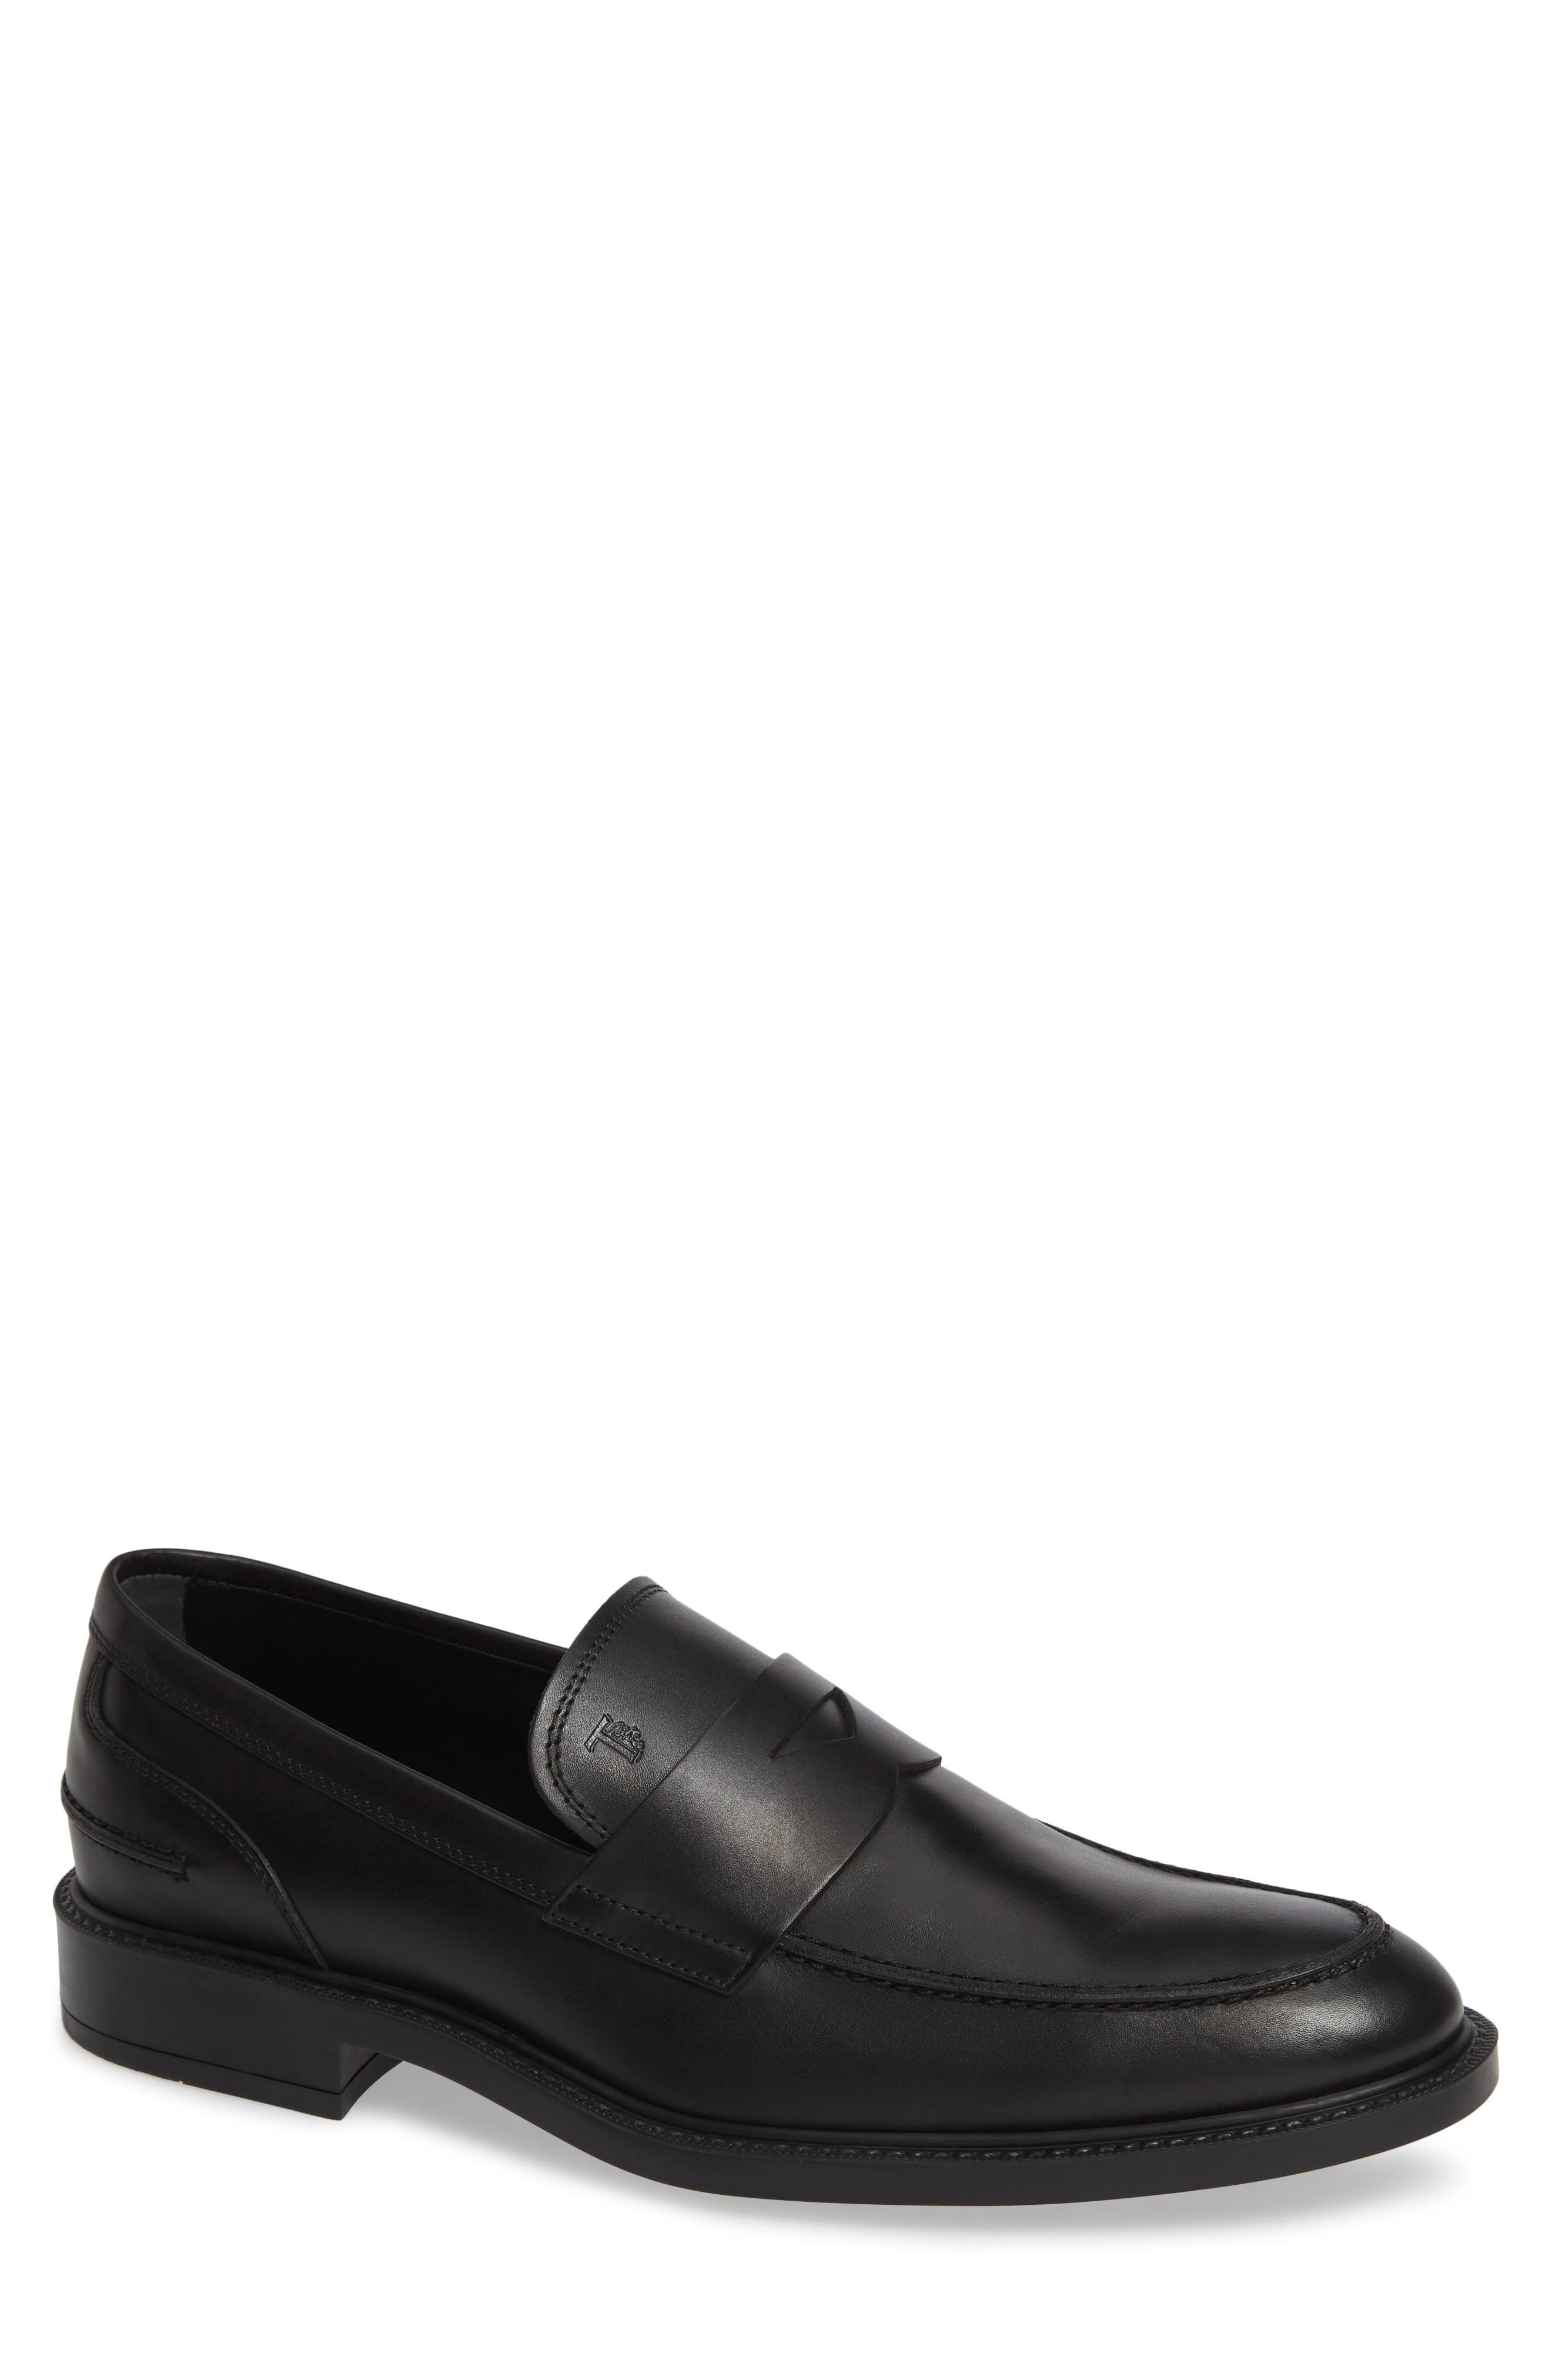 TOD'S Mocassino Water Repellent Penny Loafer, Main, color, BLACK/ BLACK